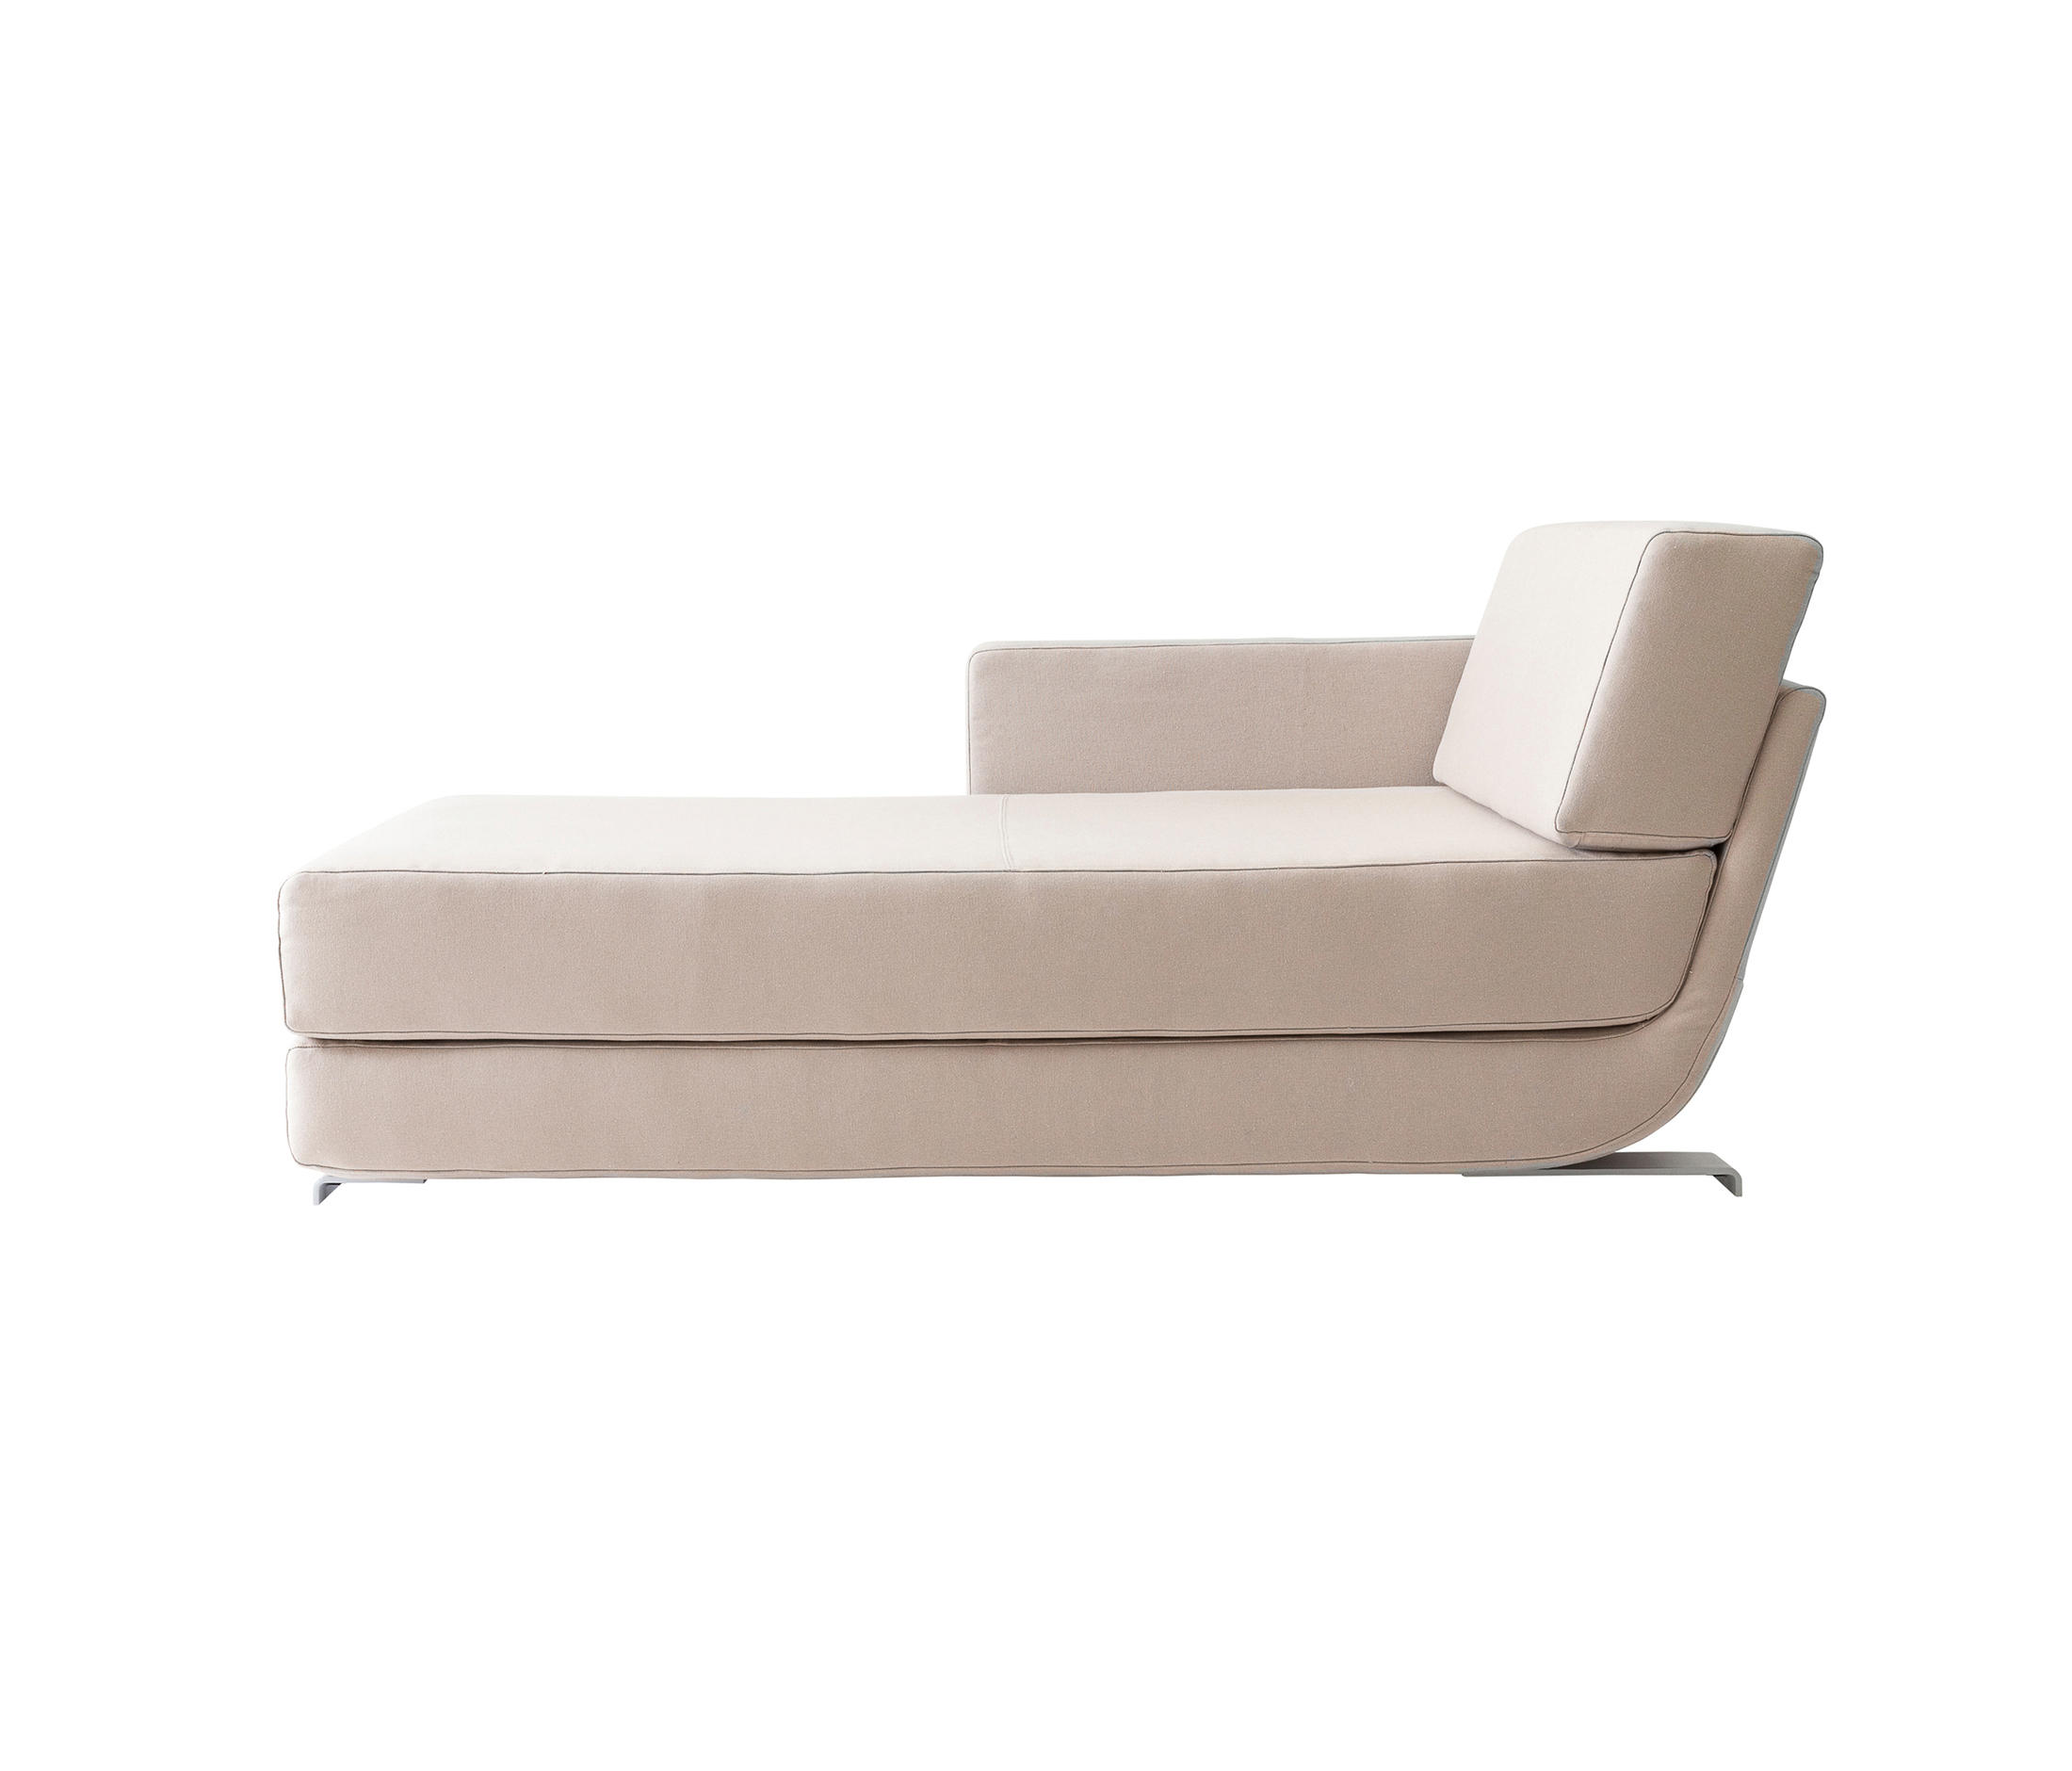 Lounge chaise long sofa beds from softline a s architonic for Chaise sofa bed